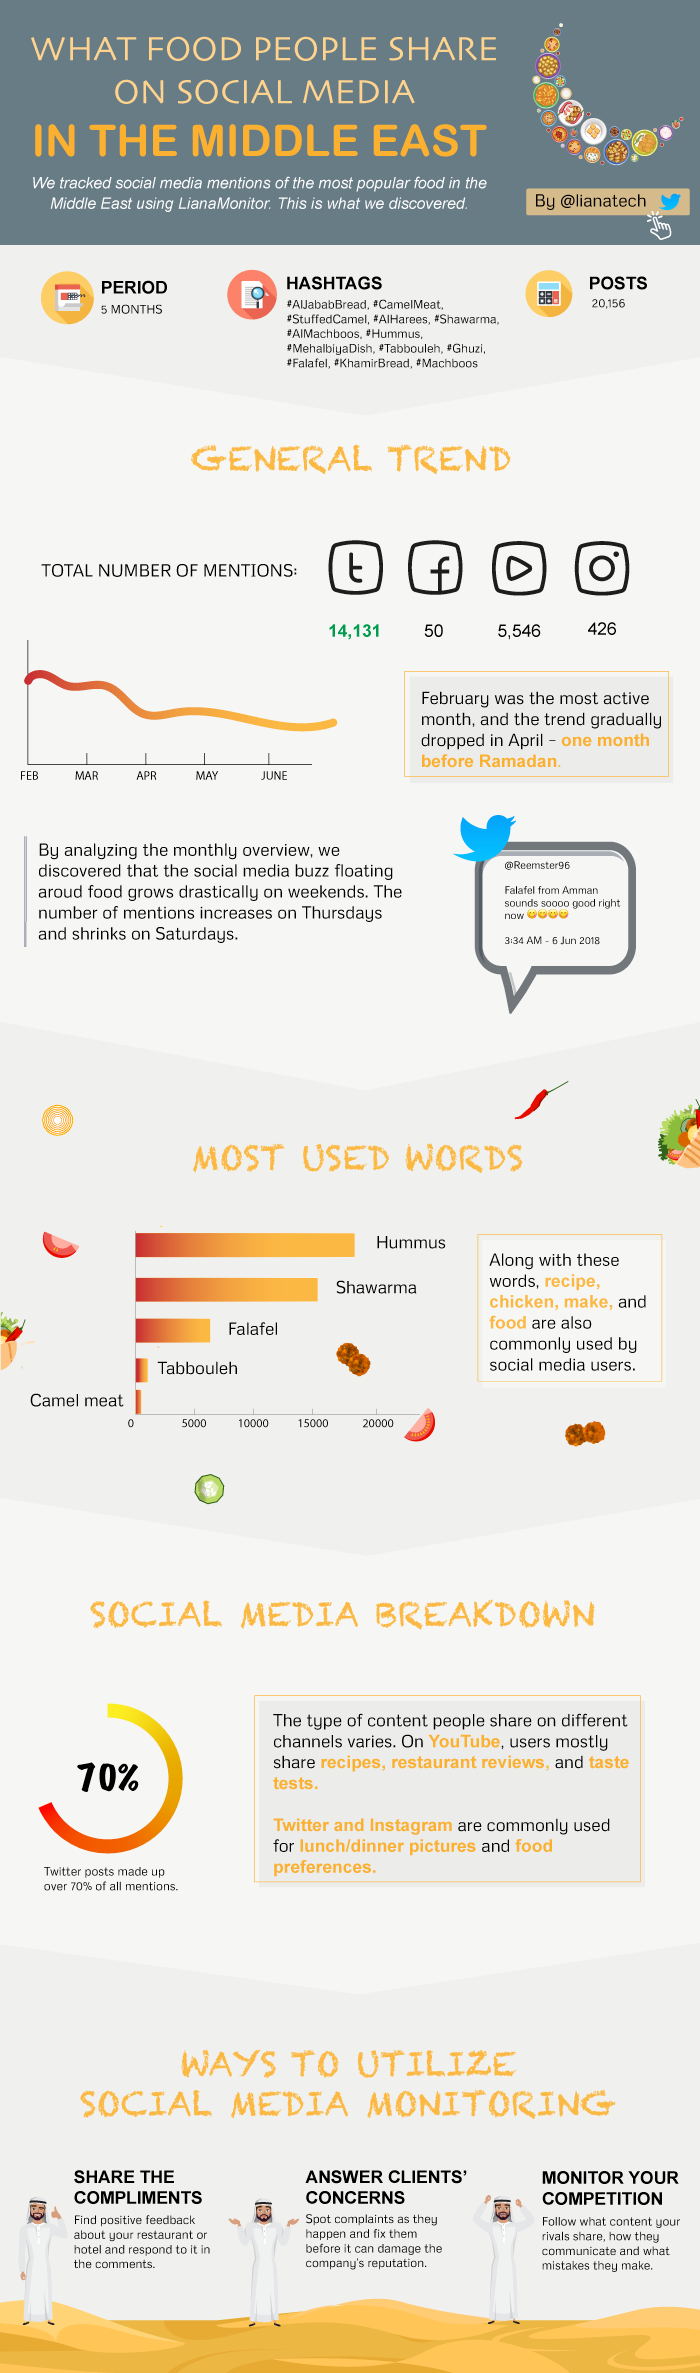 food trends on social media in the middle east